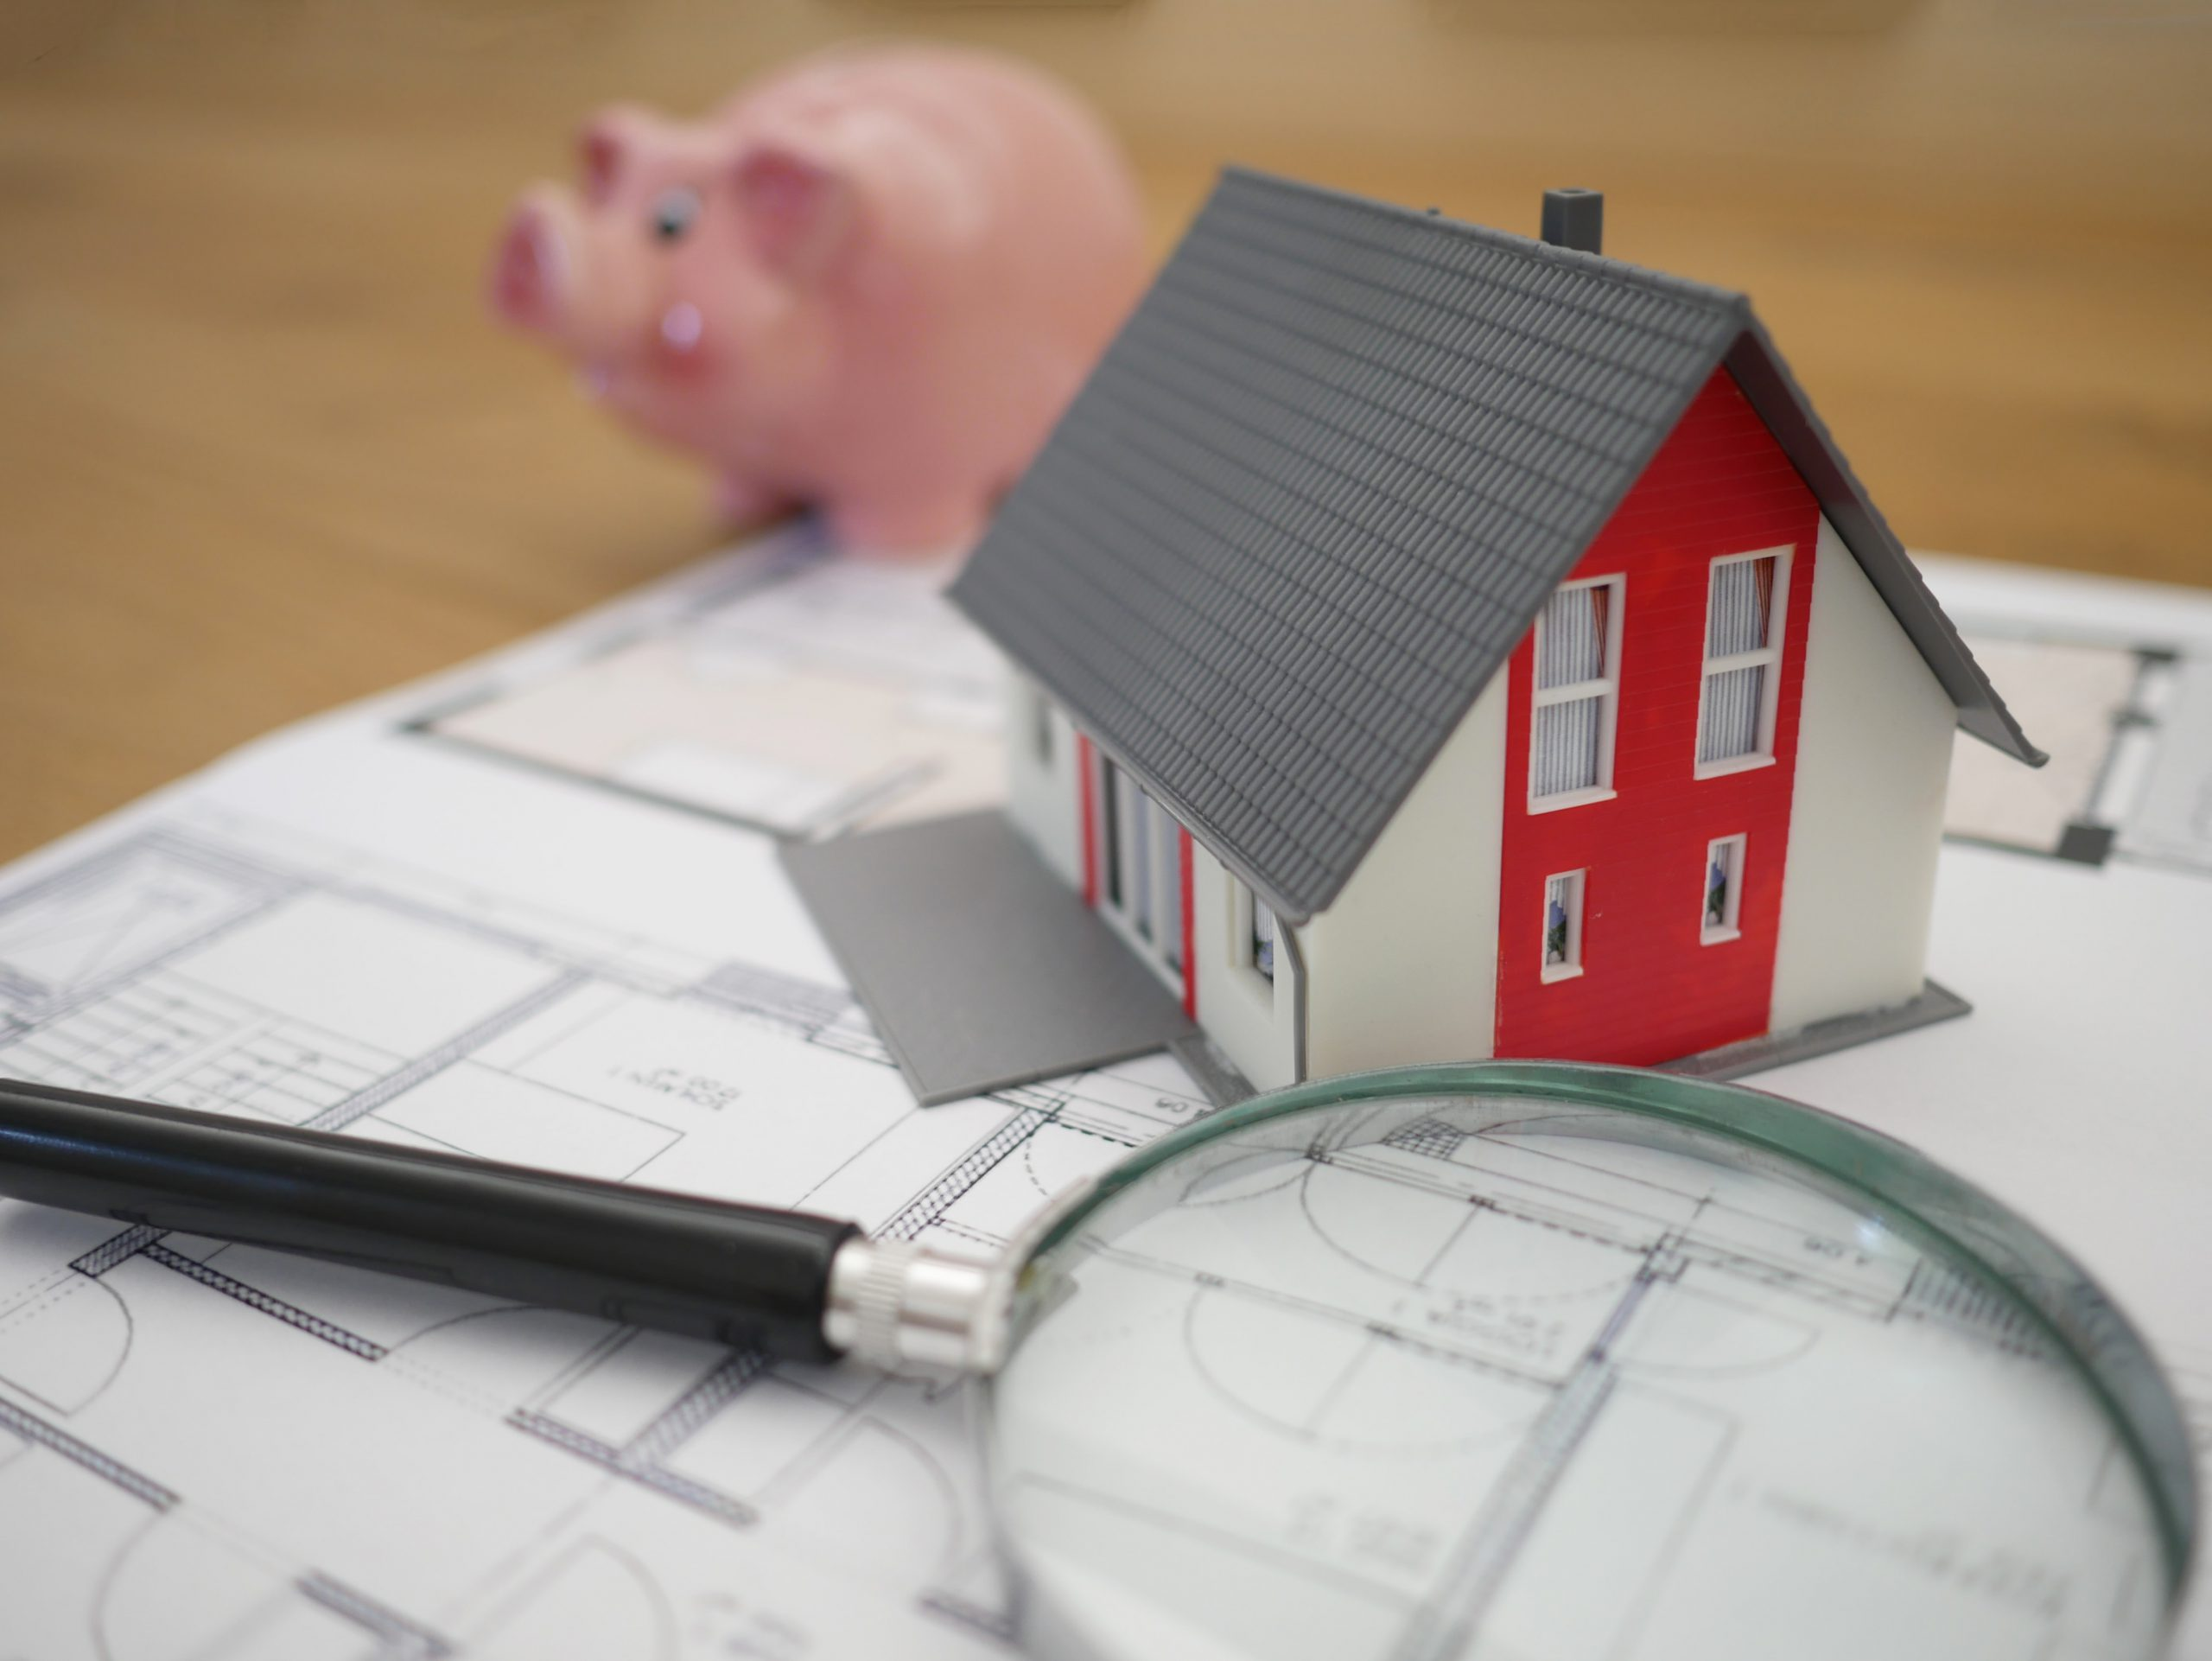 Why Are Background Checks and Due Diligence Important in Real Estate?